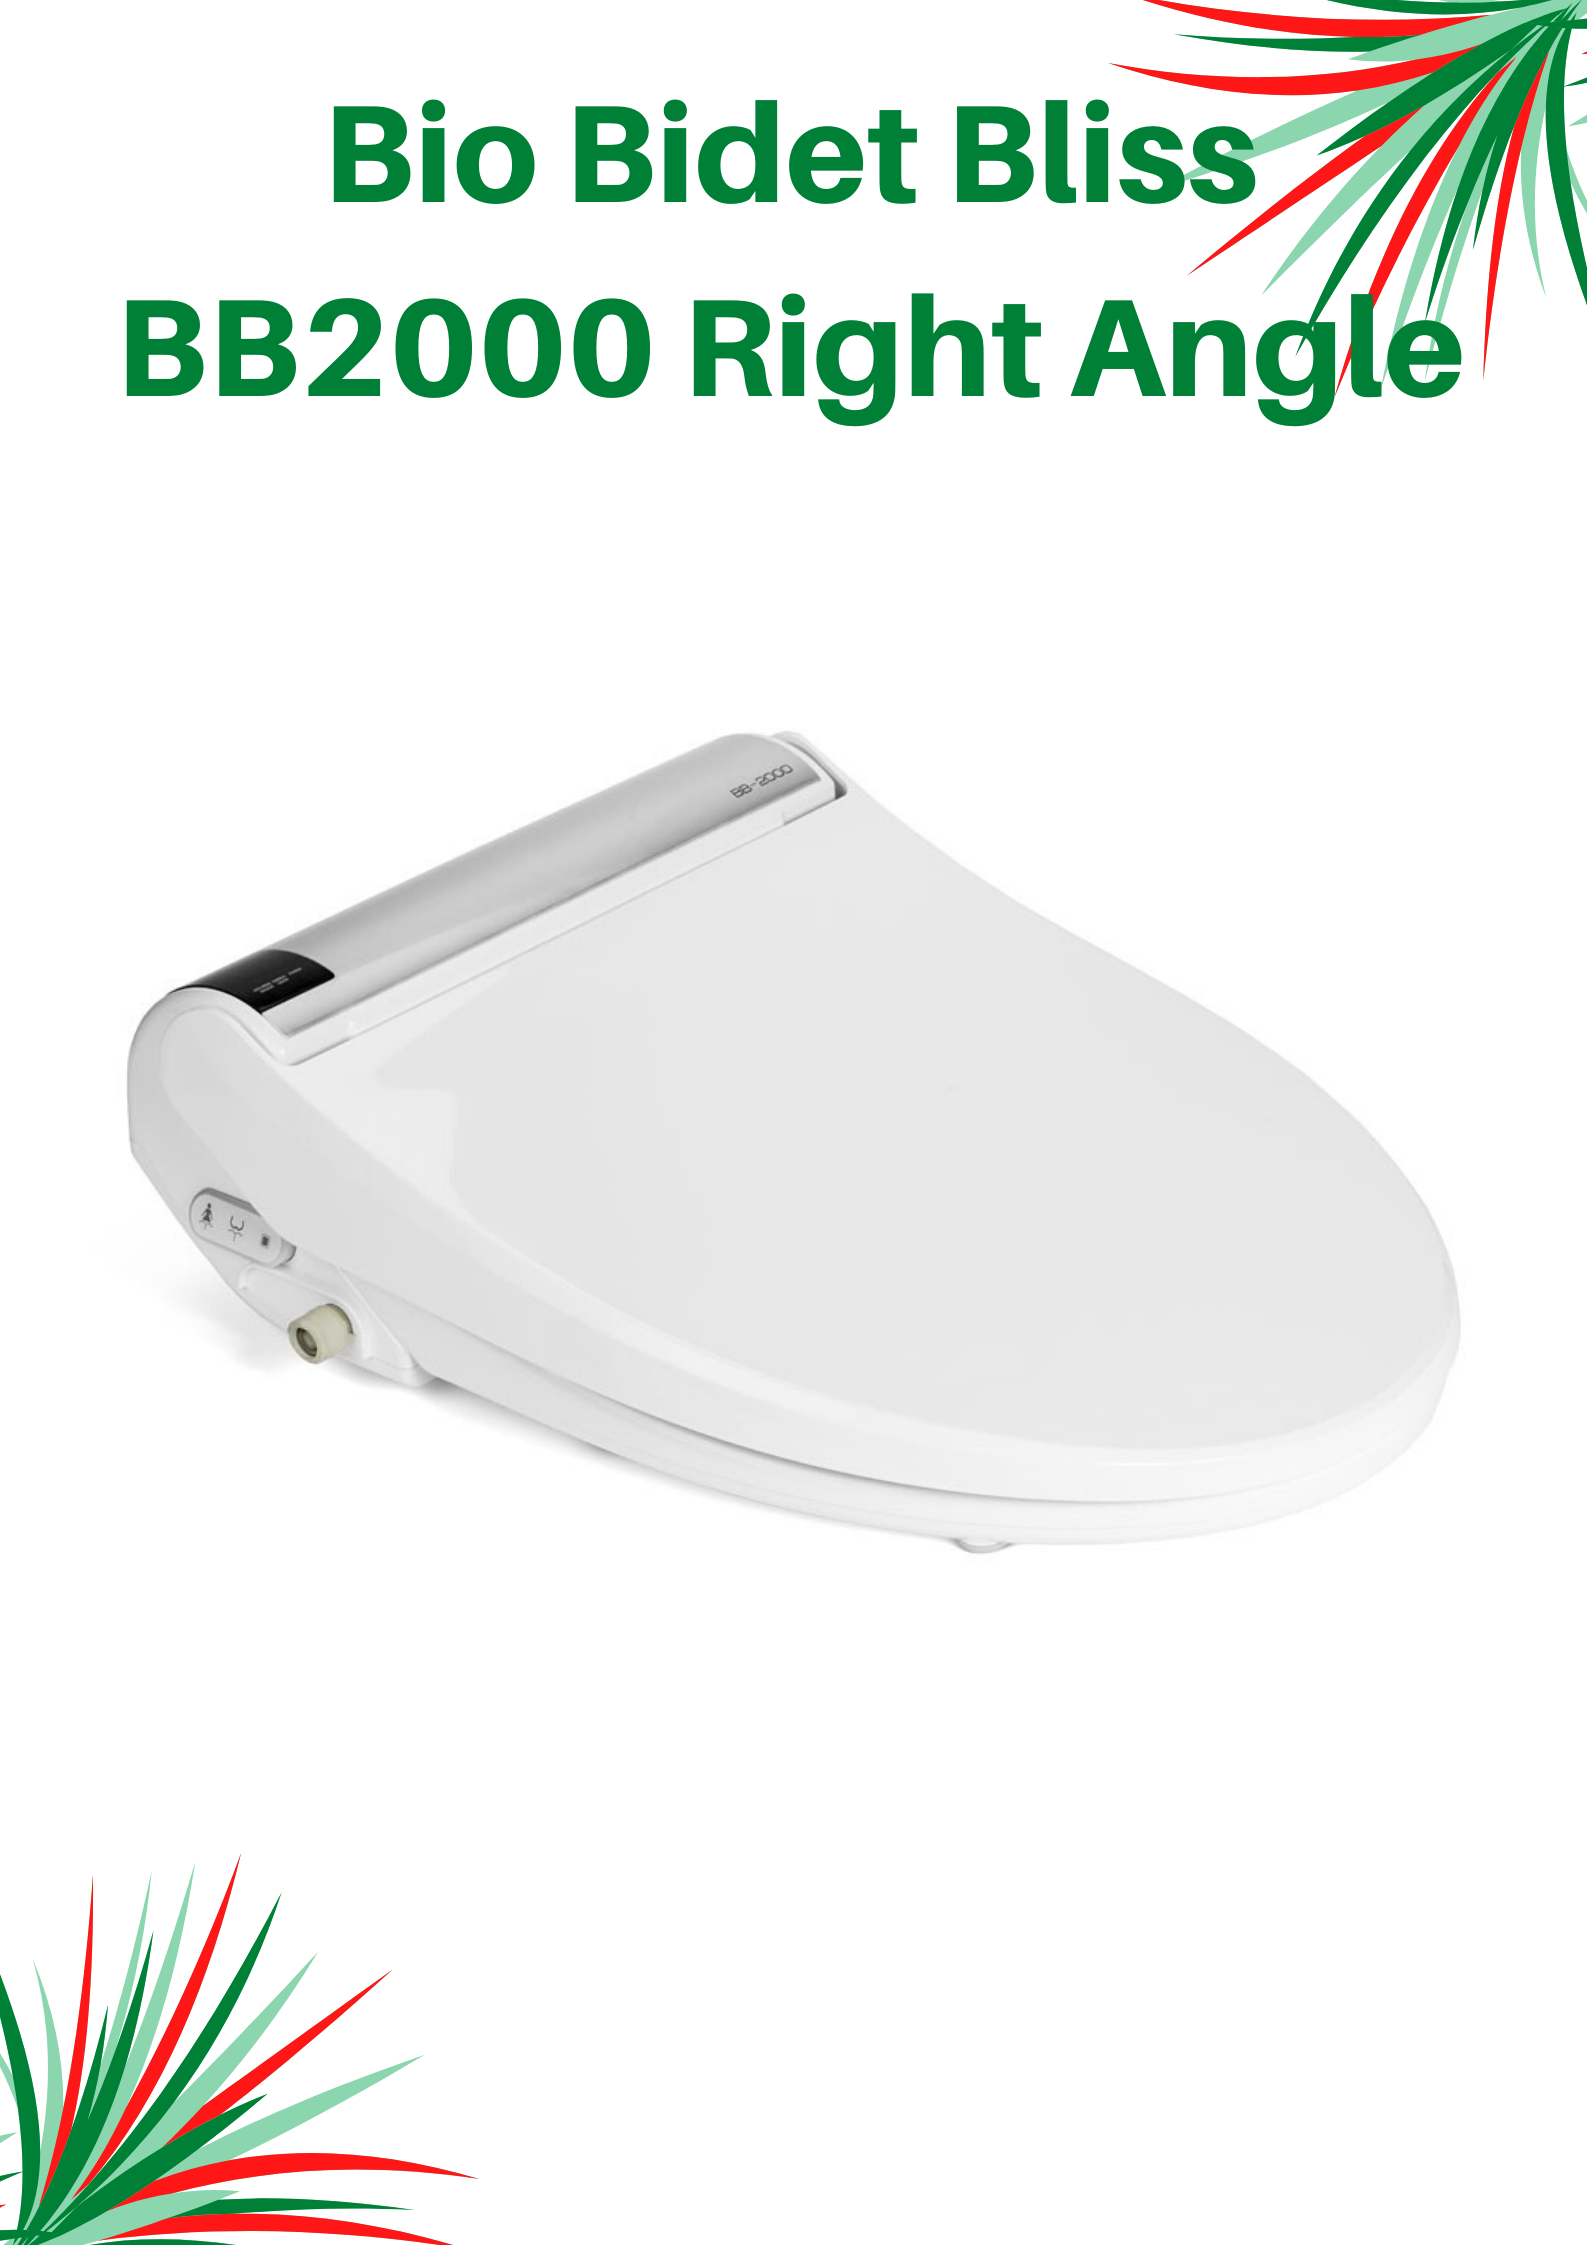 Biobidet Bliss Bb2000 Elongated Toilet Seat S Right Angle View In 2020 Biobidet Bidet Elongated Toilet Seat